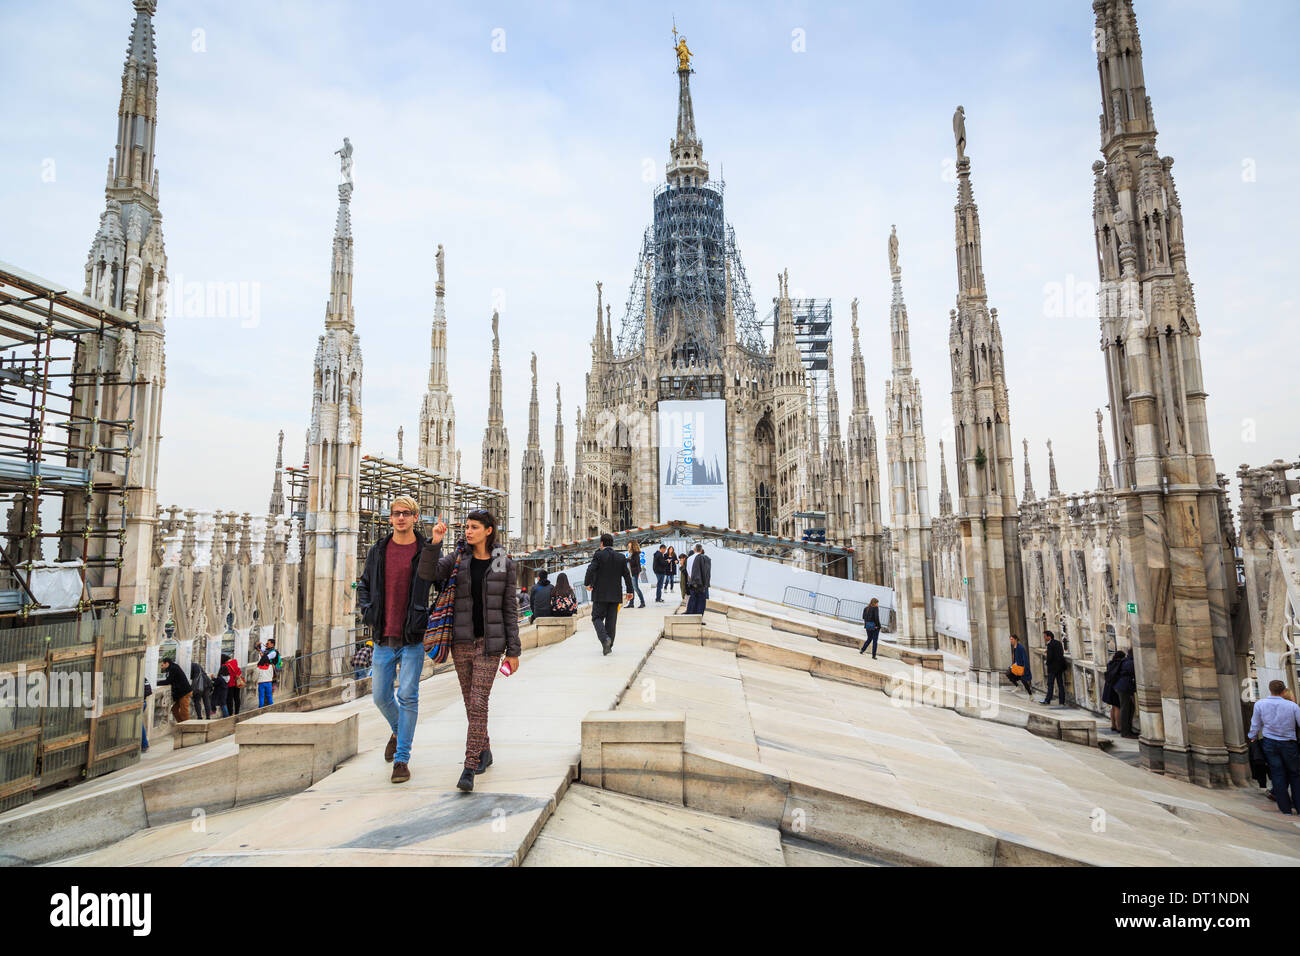 Duomo (Cathedral), Milan, Lombardy, Italy, Europe - Stock Image